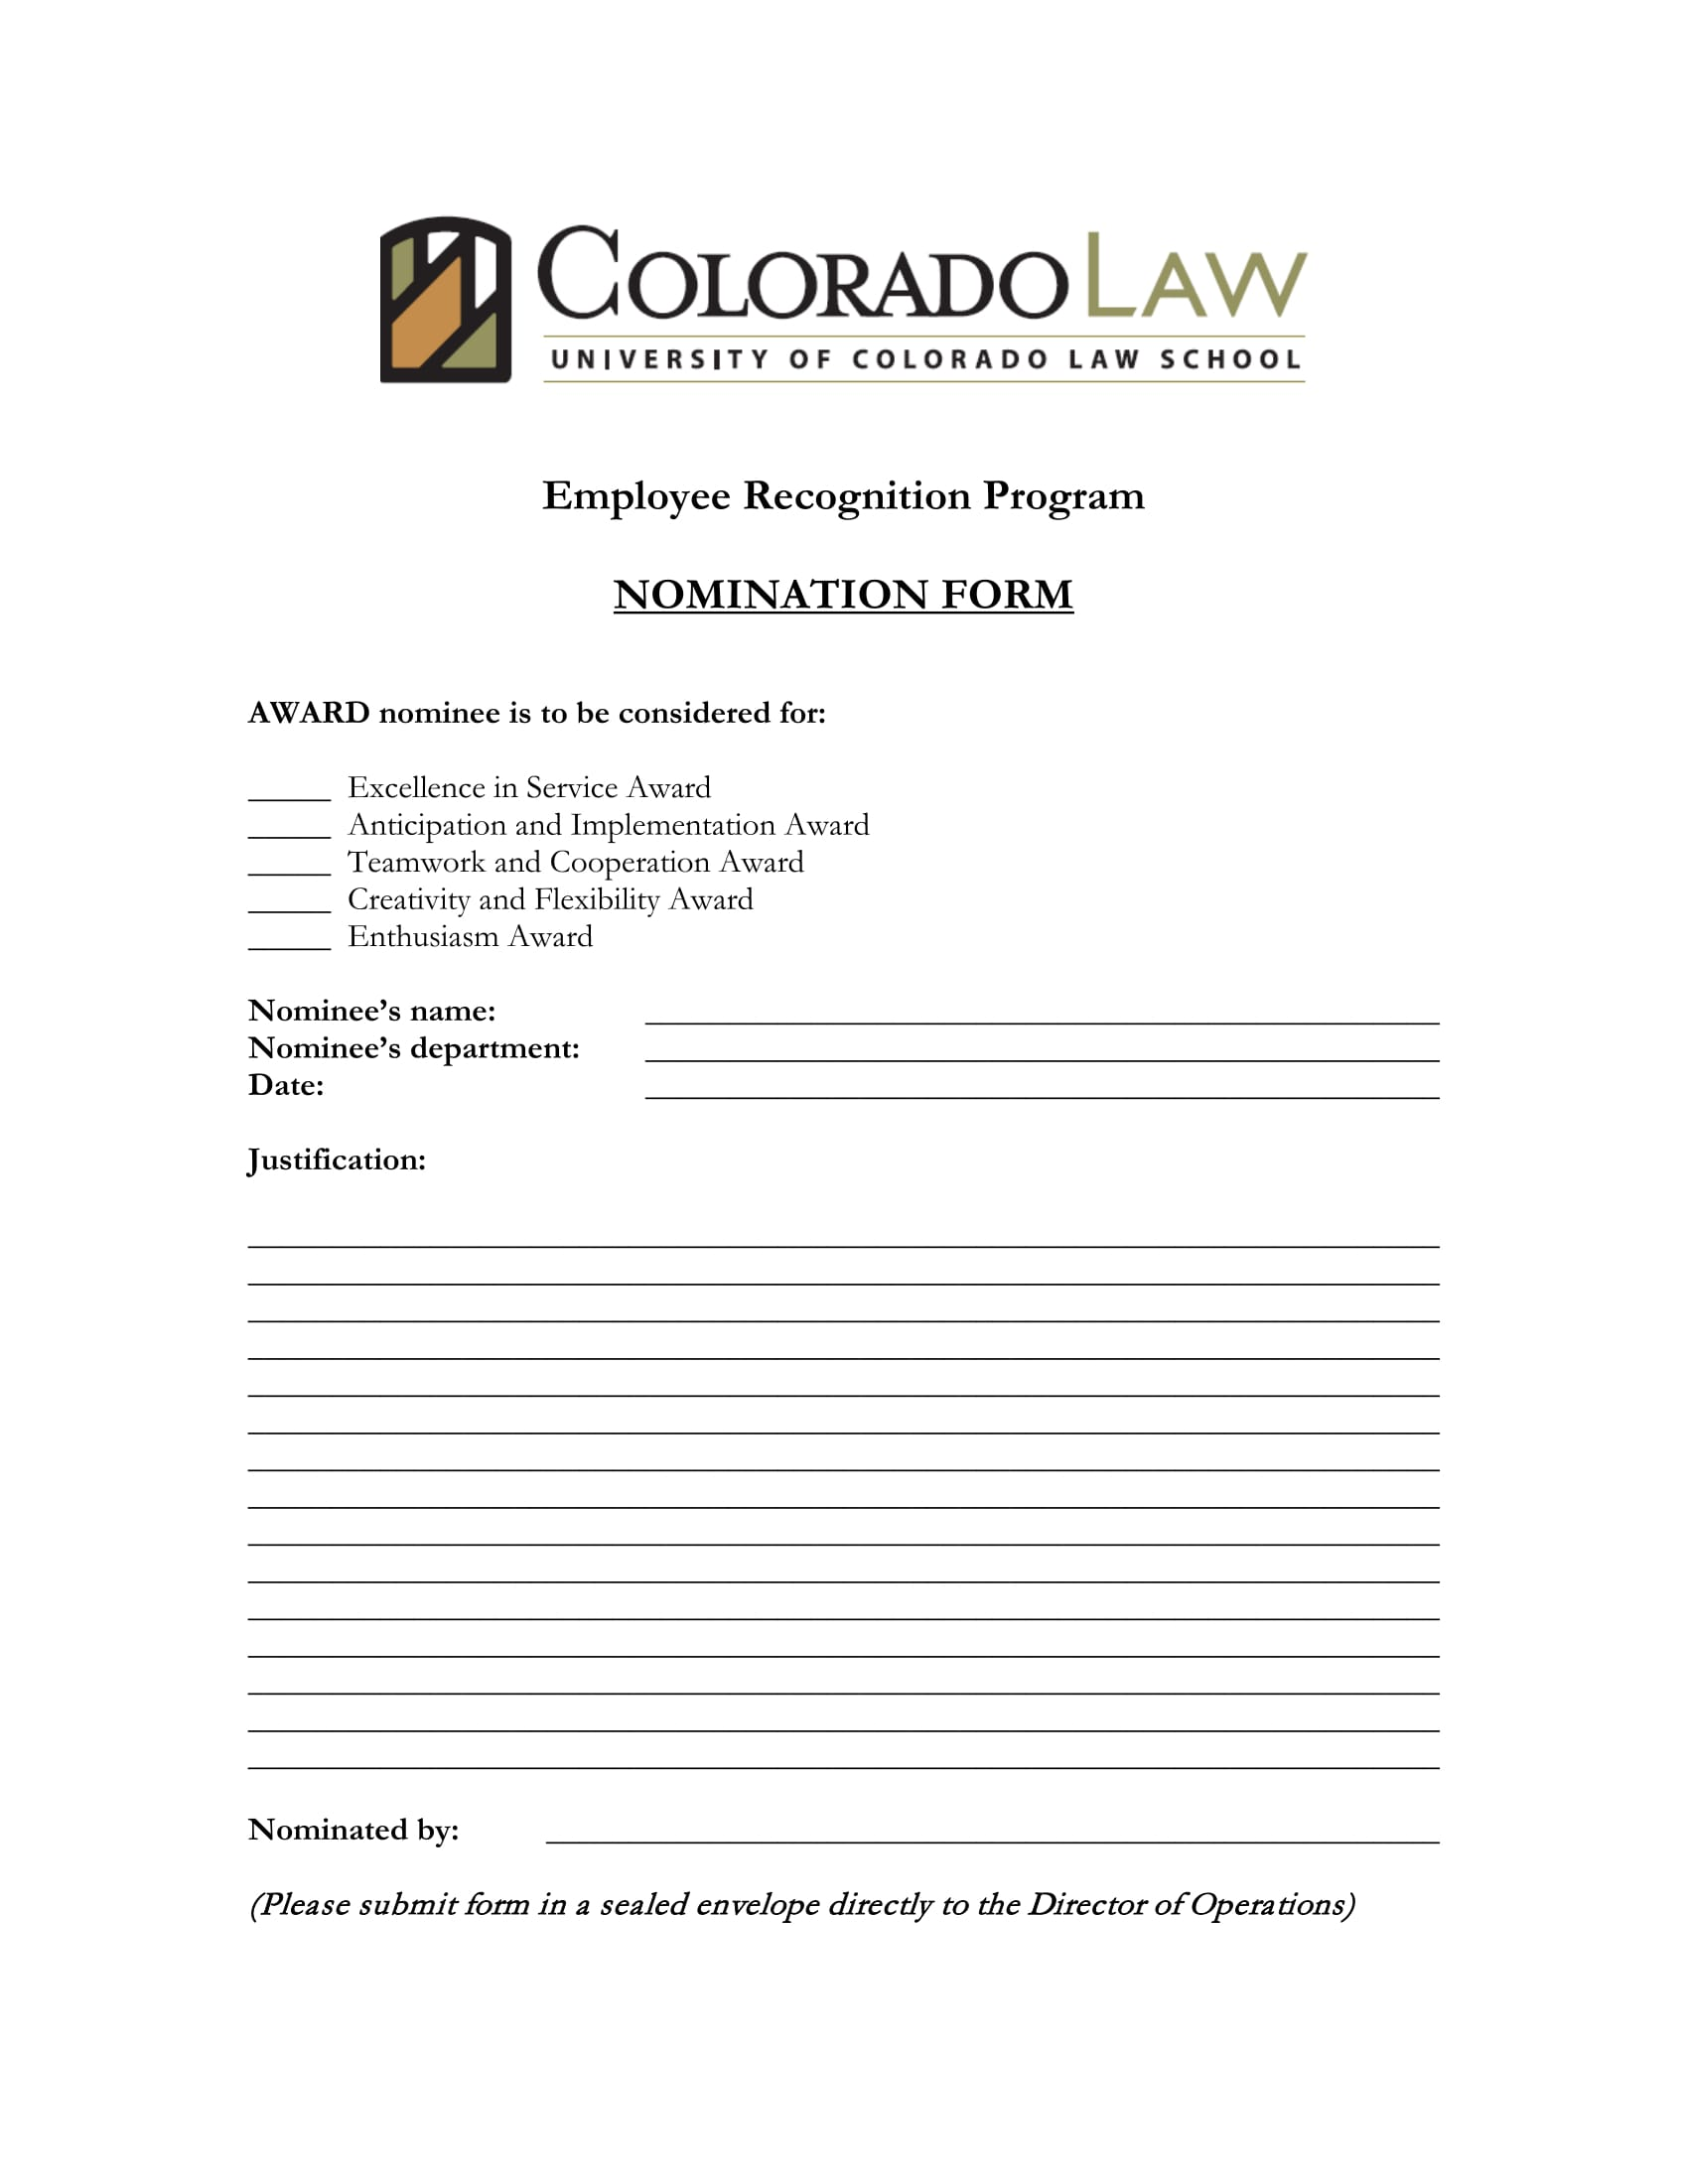 employee recognition and nomination form 1